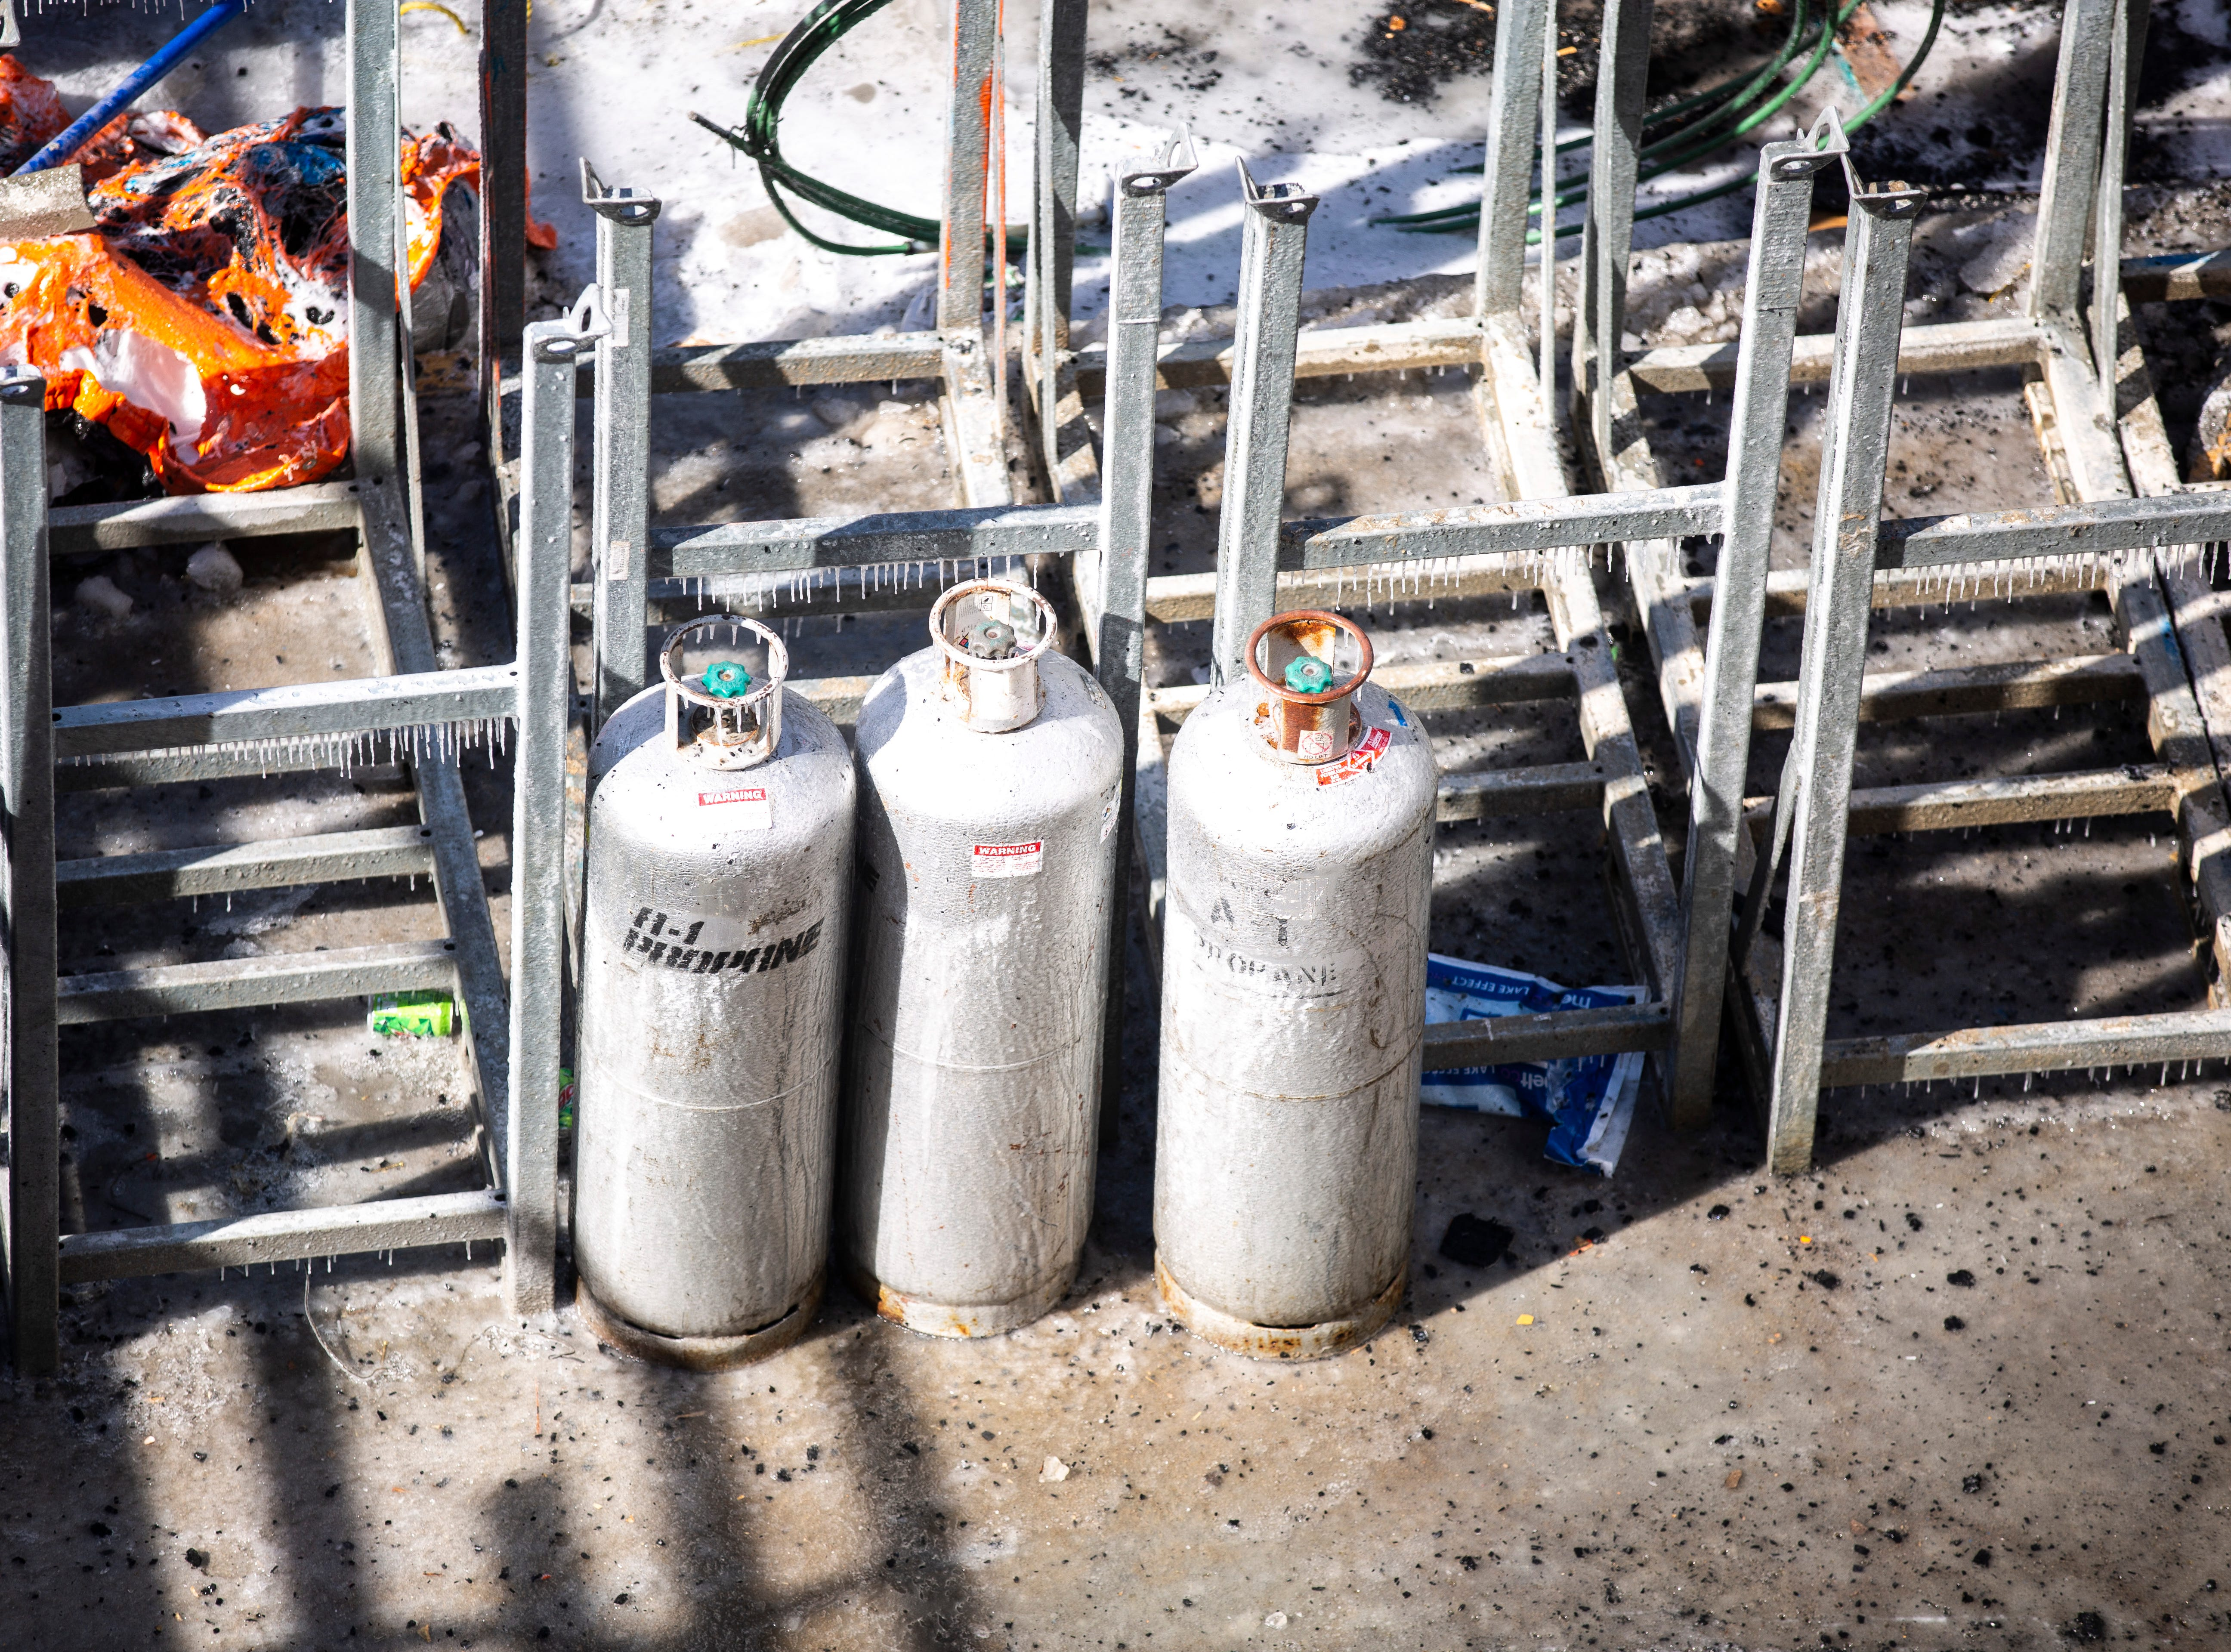 Propane cylinders sit at the Hieronymous Square construction site on Wednesday, March 6, 2019, at 314 S. Clinton Street in downtown Iowa City, Iowa.